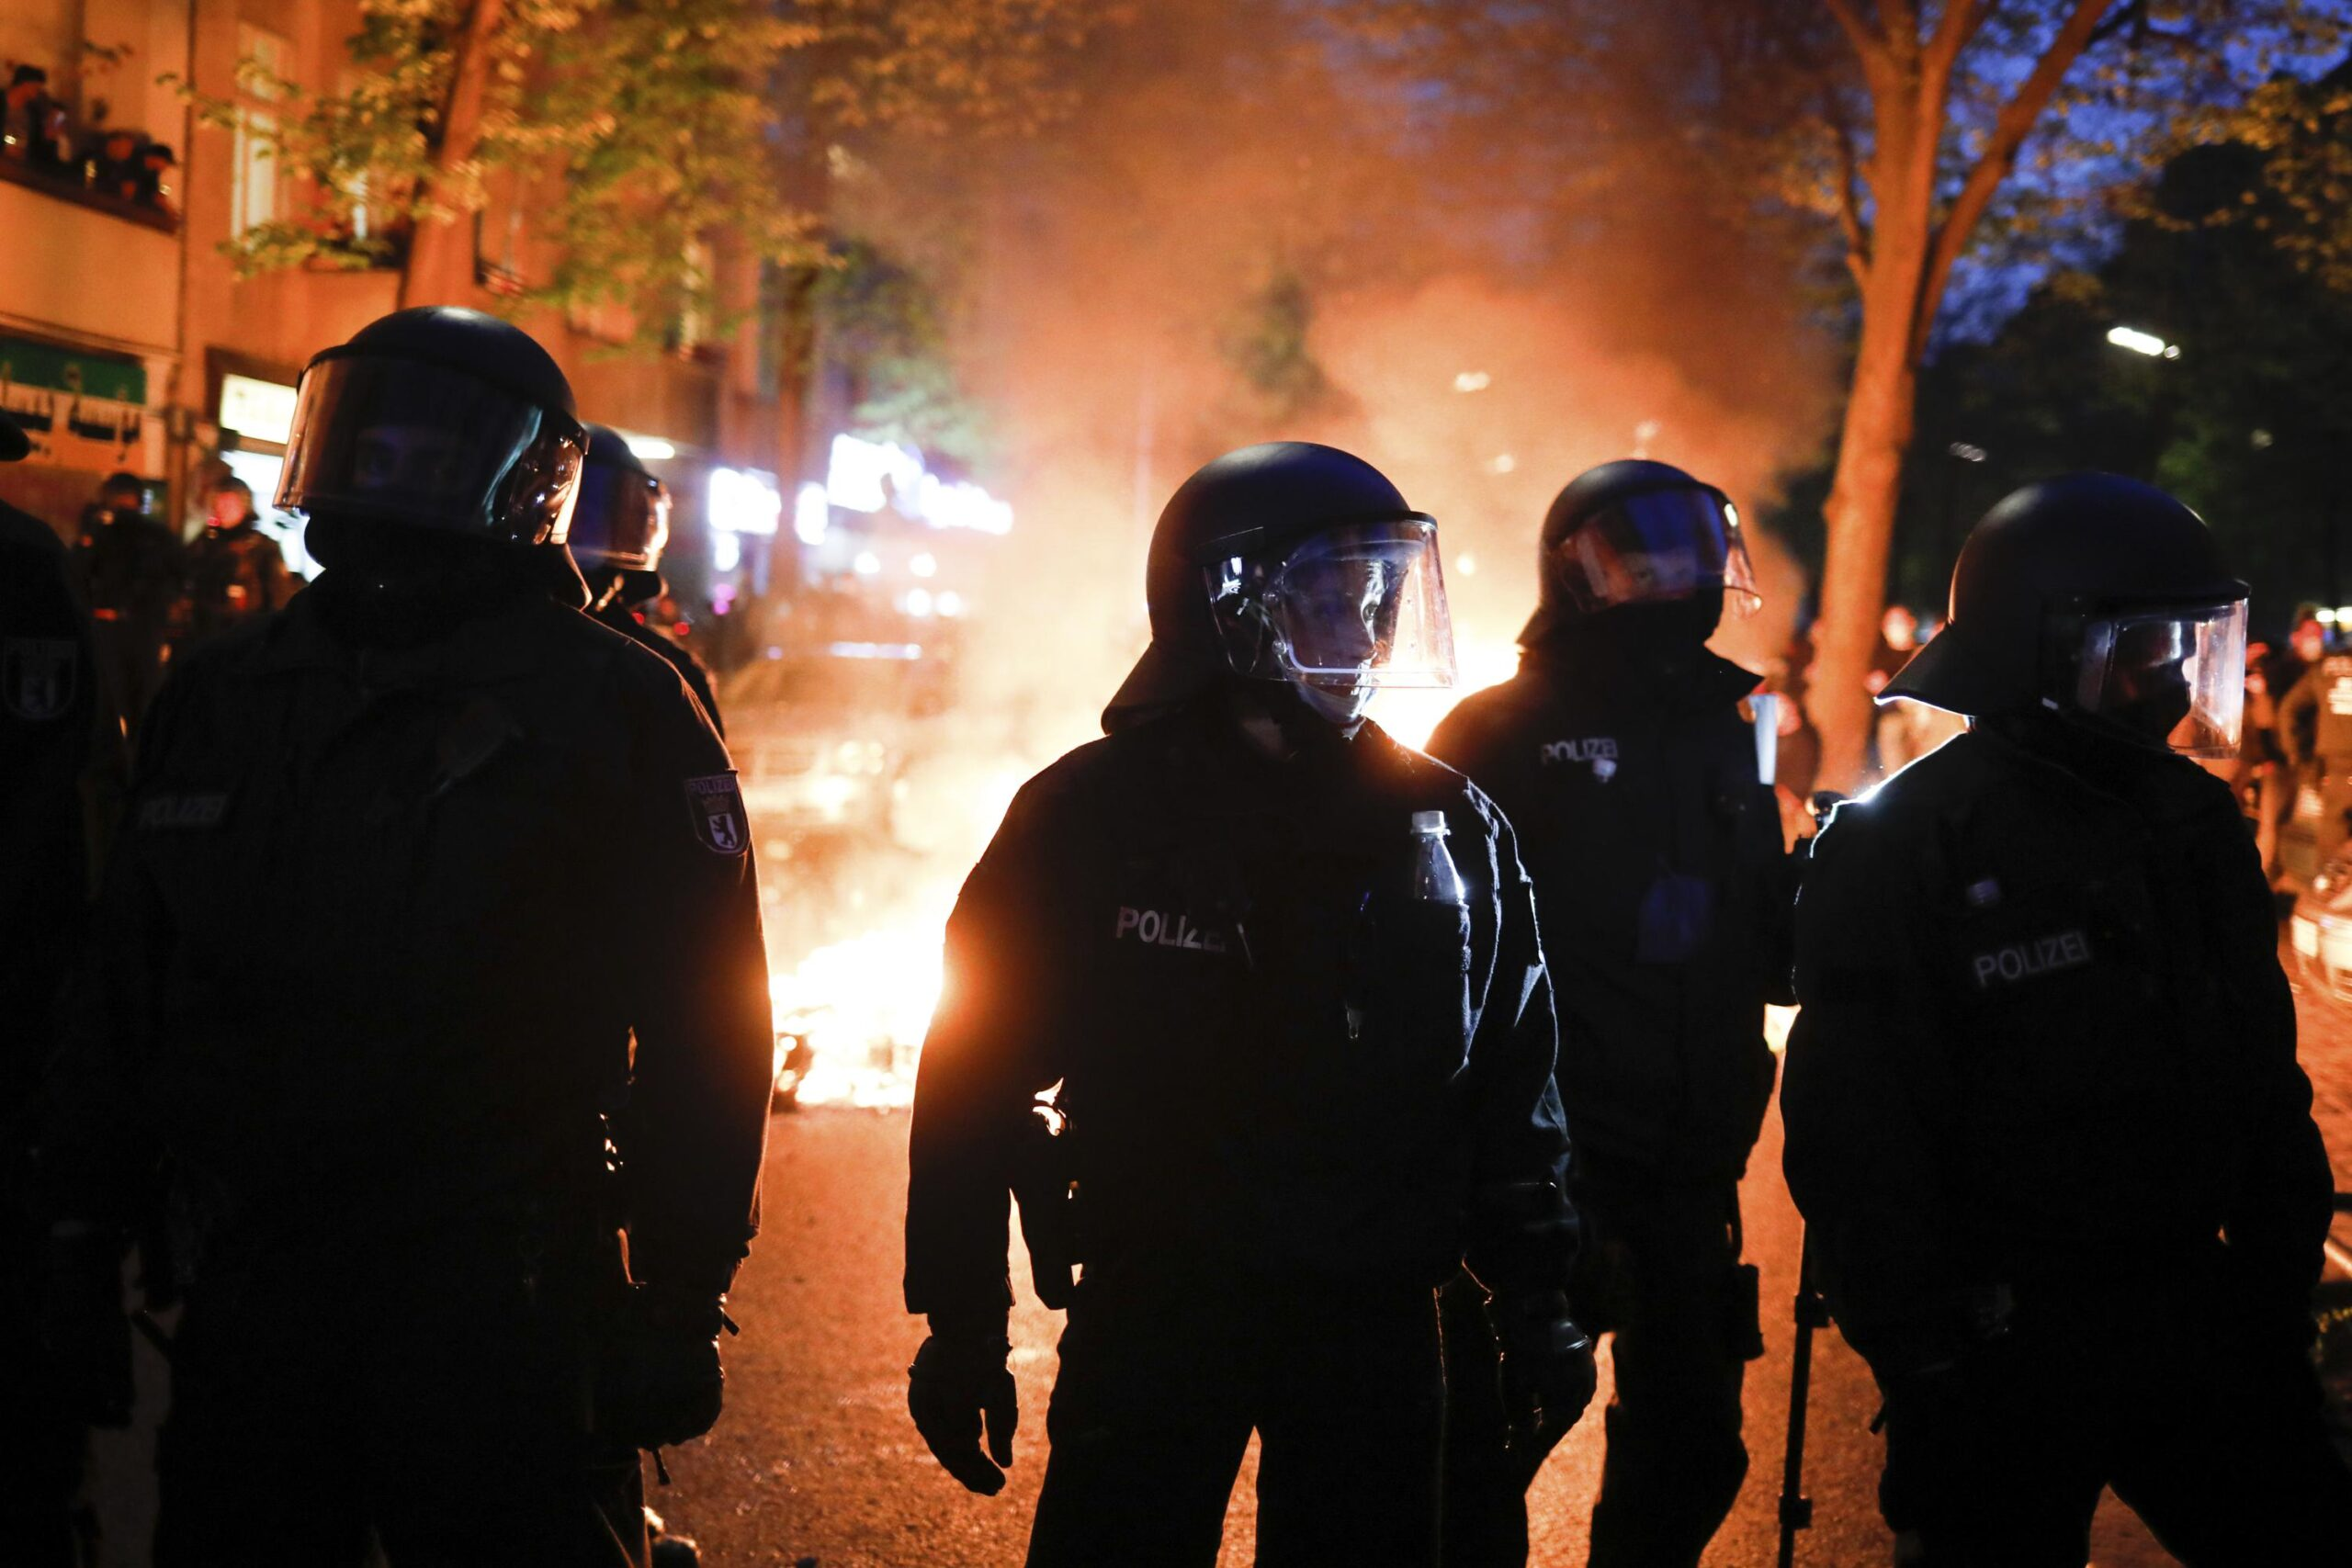 Over 90 German police injured in May Day riots